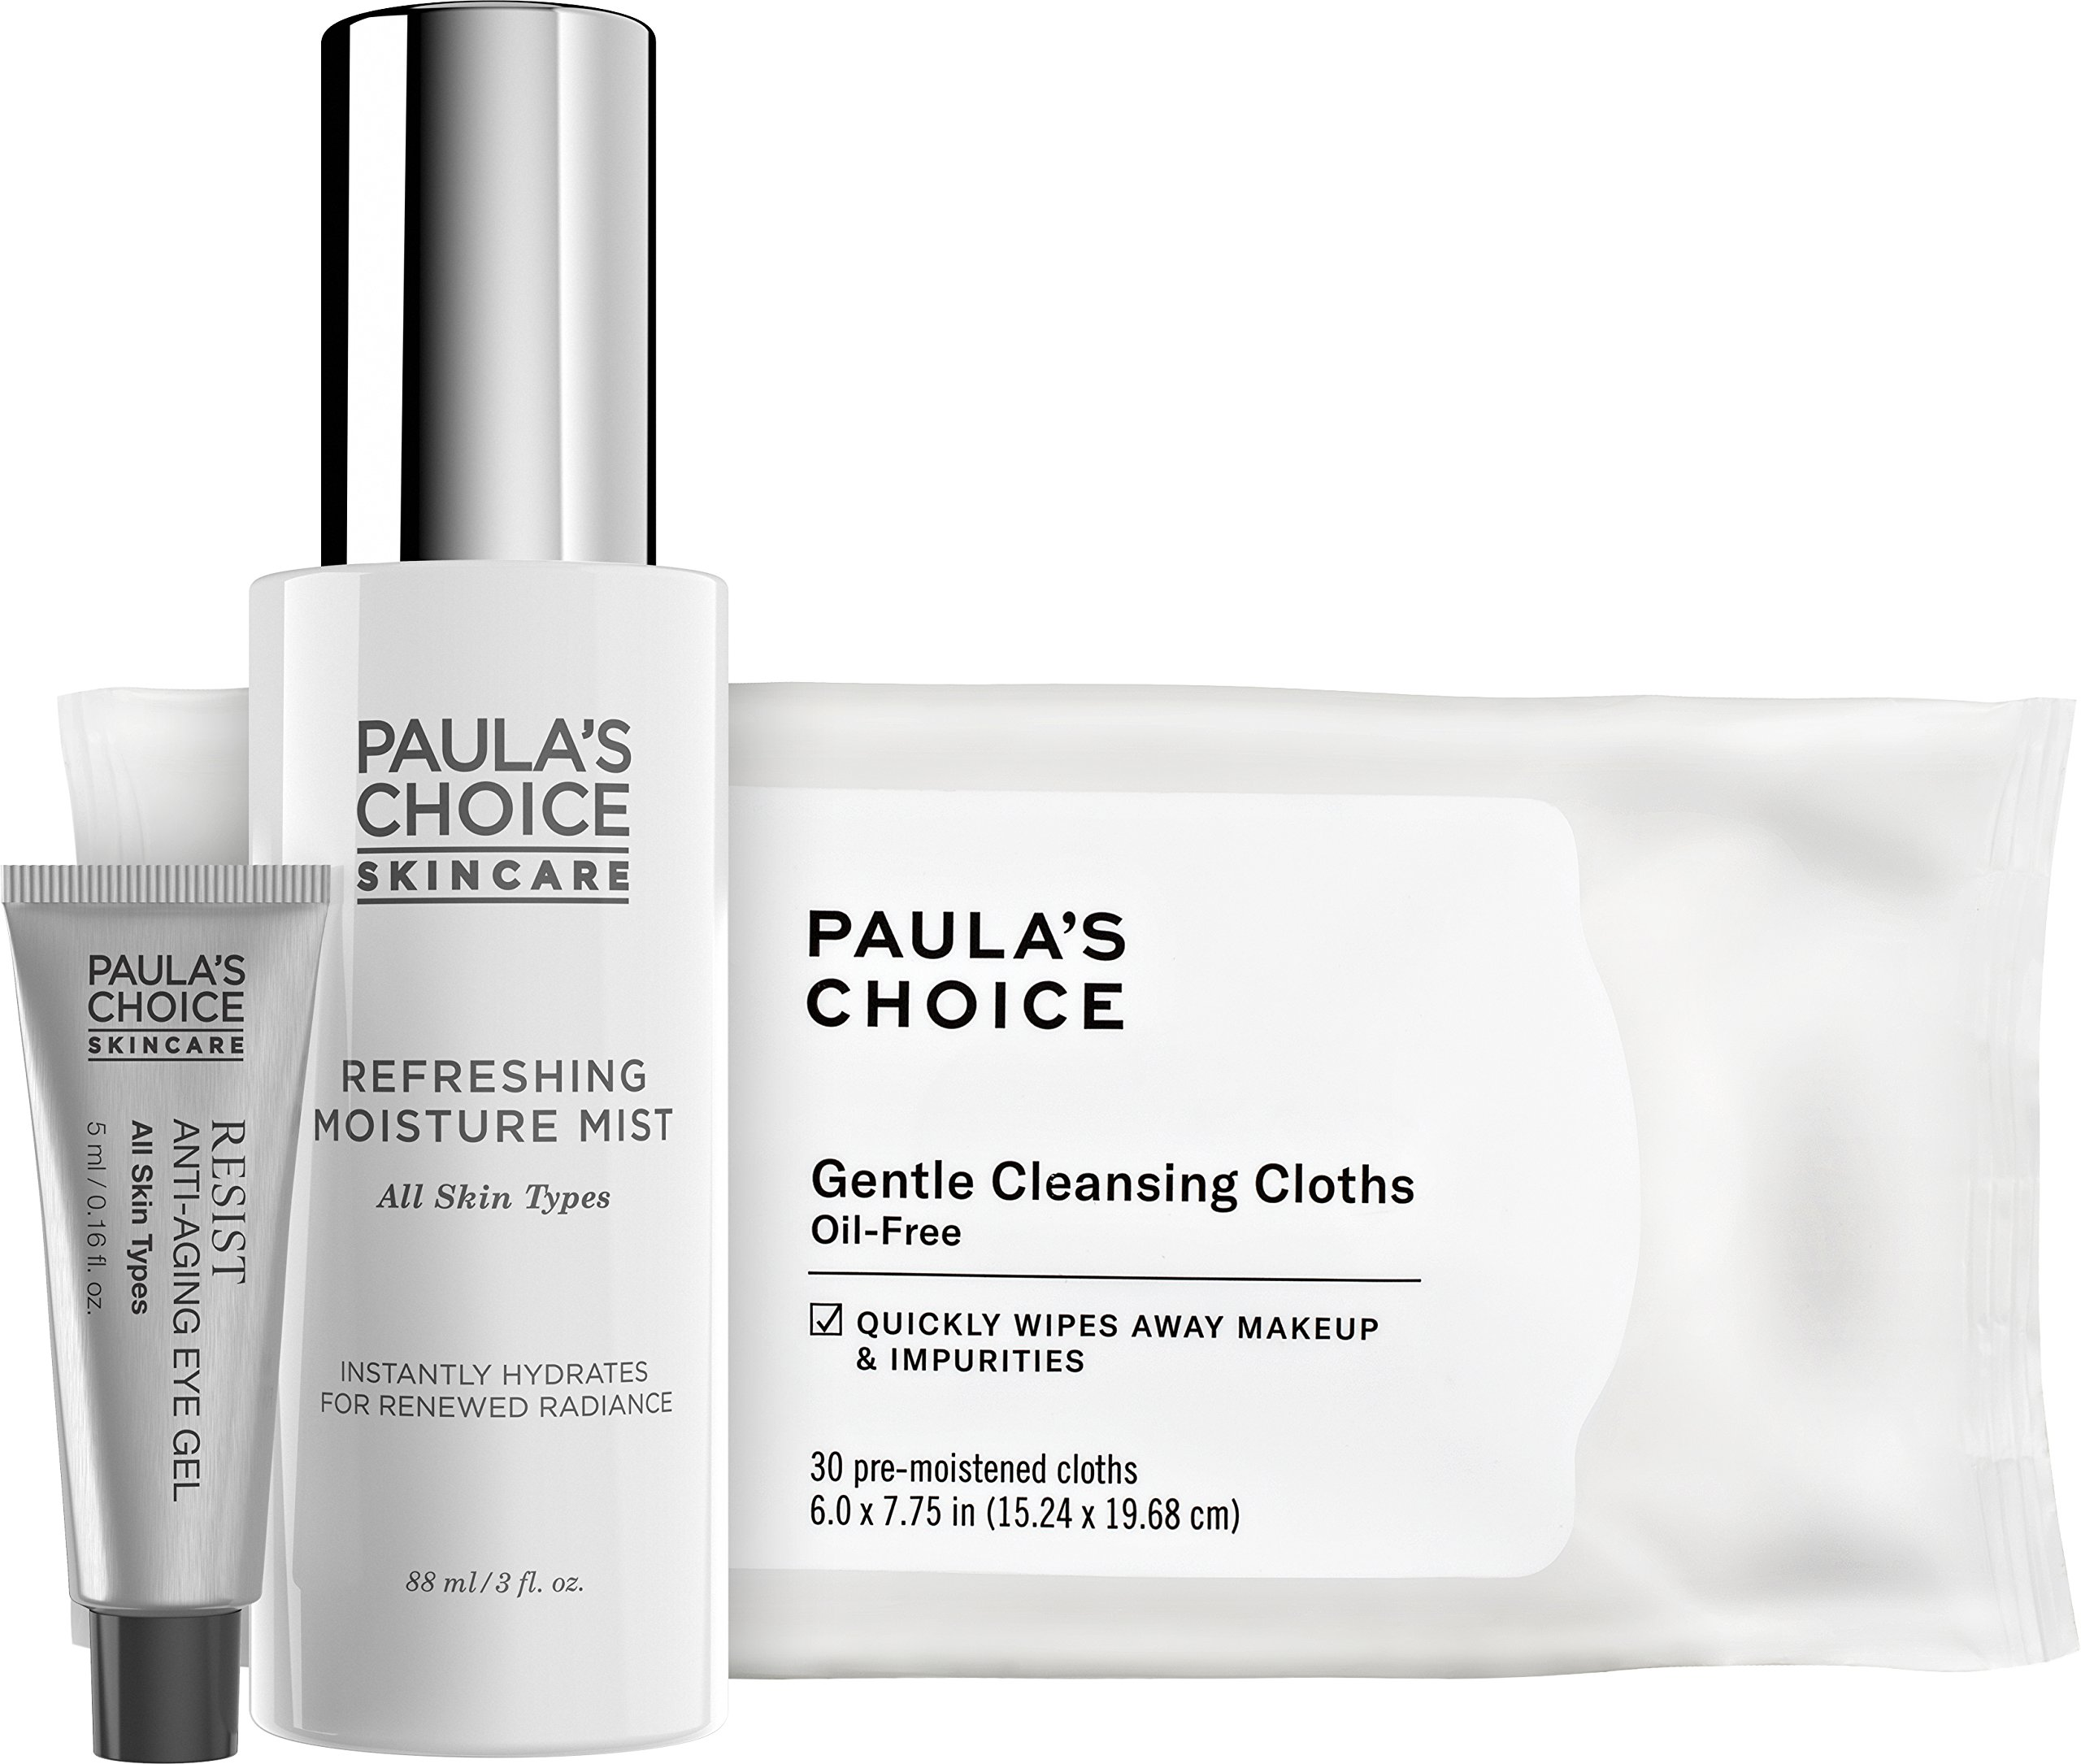 Paula's Choice Anniversary Edition Ready. Set. Refresh. Travel Essential Trio, Includes RESIST Anti-Aging Eye Gel, Refreshing Moisture Mist Facial Spray & Gentle Cleansing Cloths, For All Skin Types